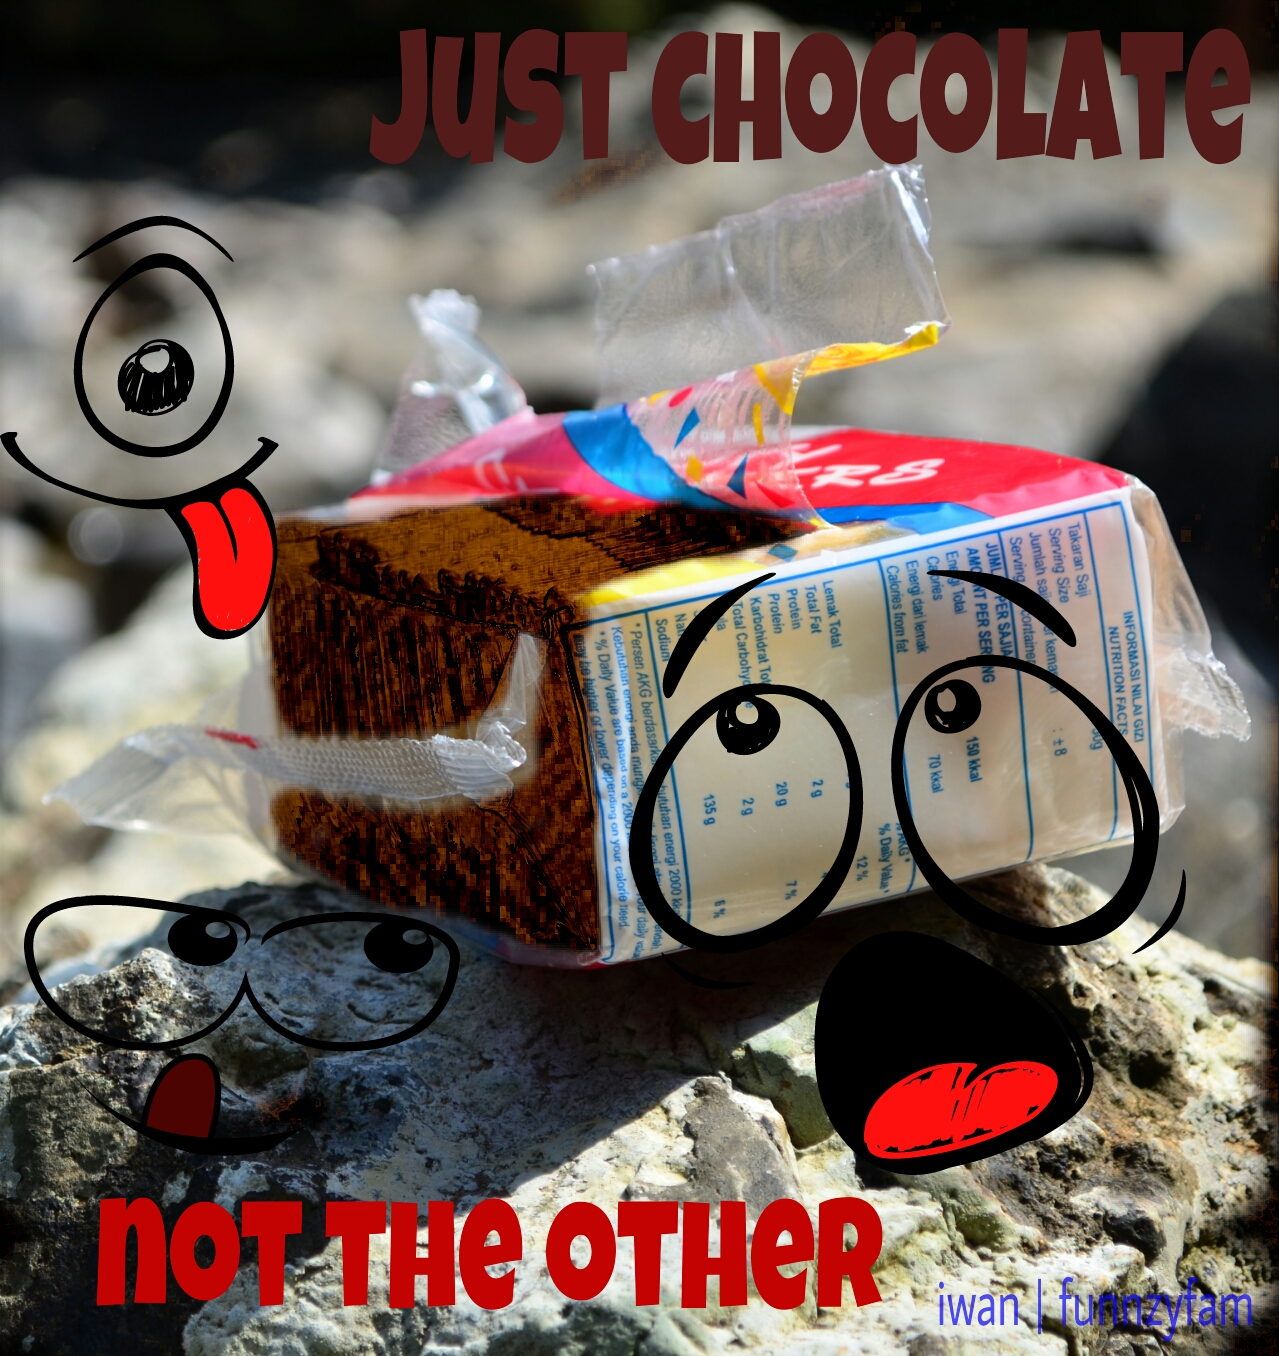 chocolate ad graphic design